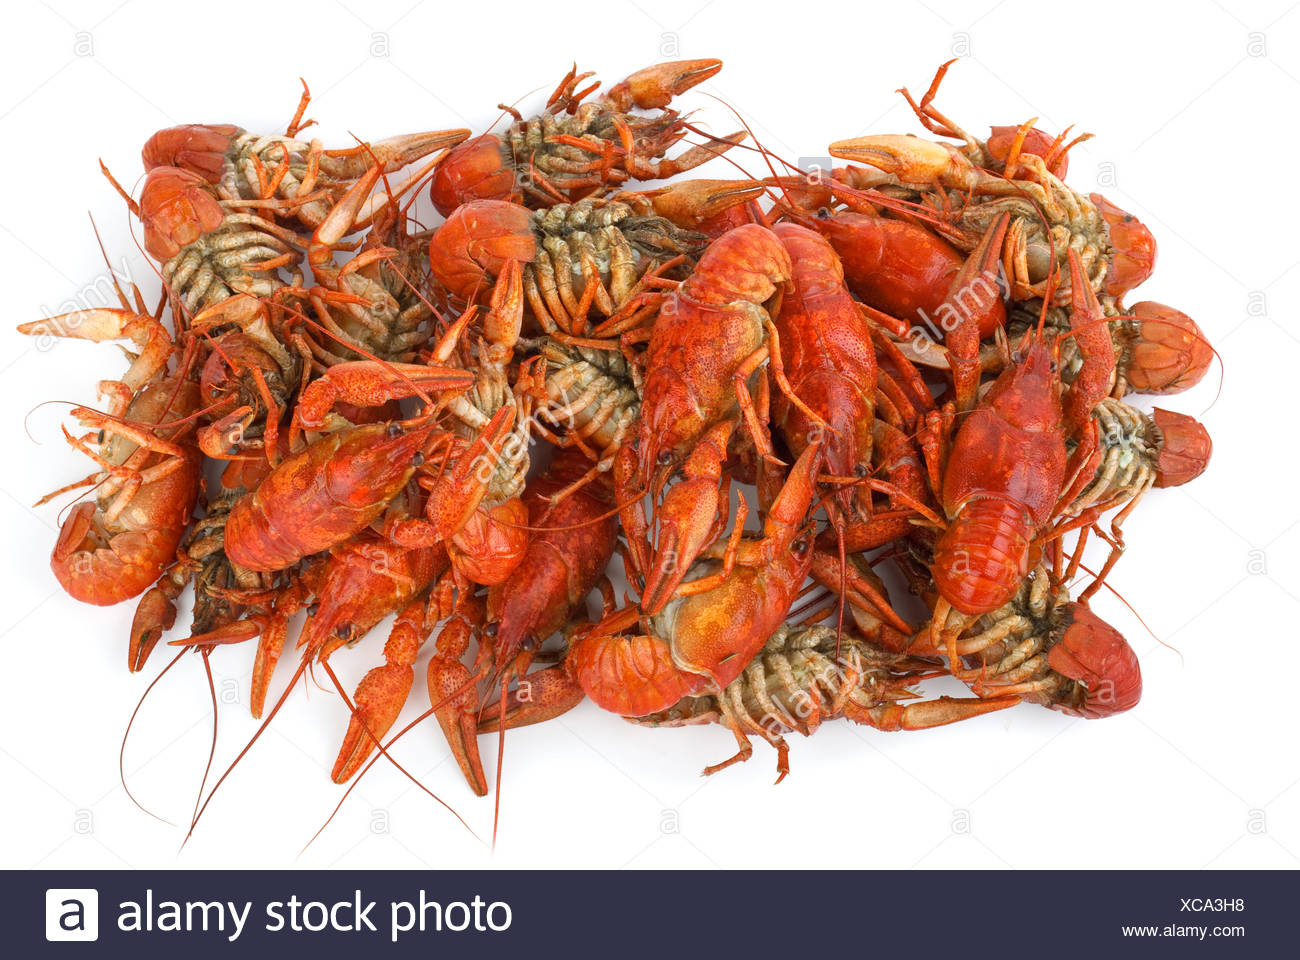 Pile of boiled crawfishes - Stock Image